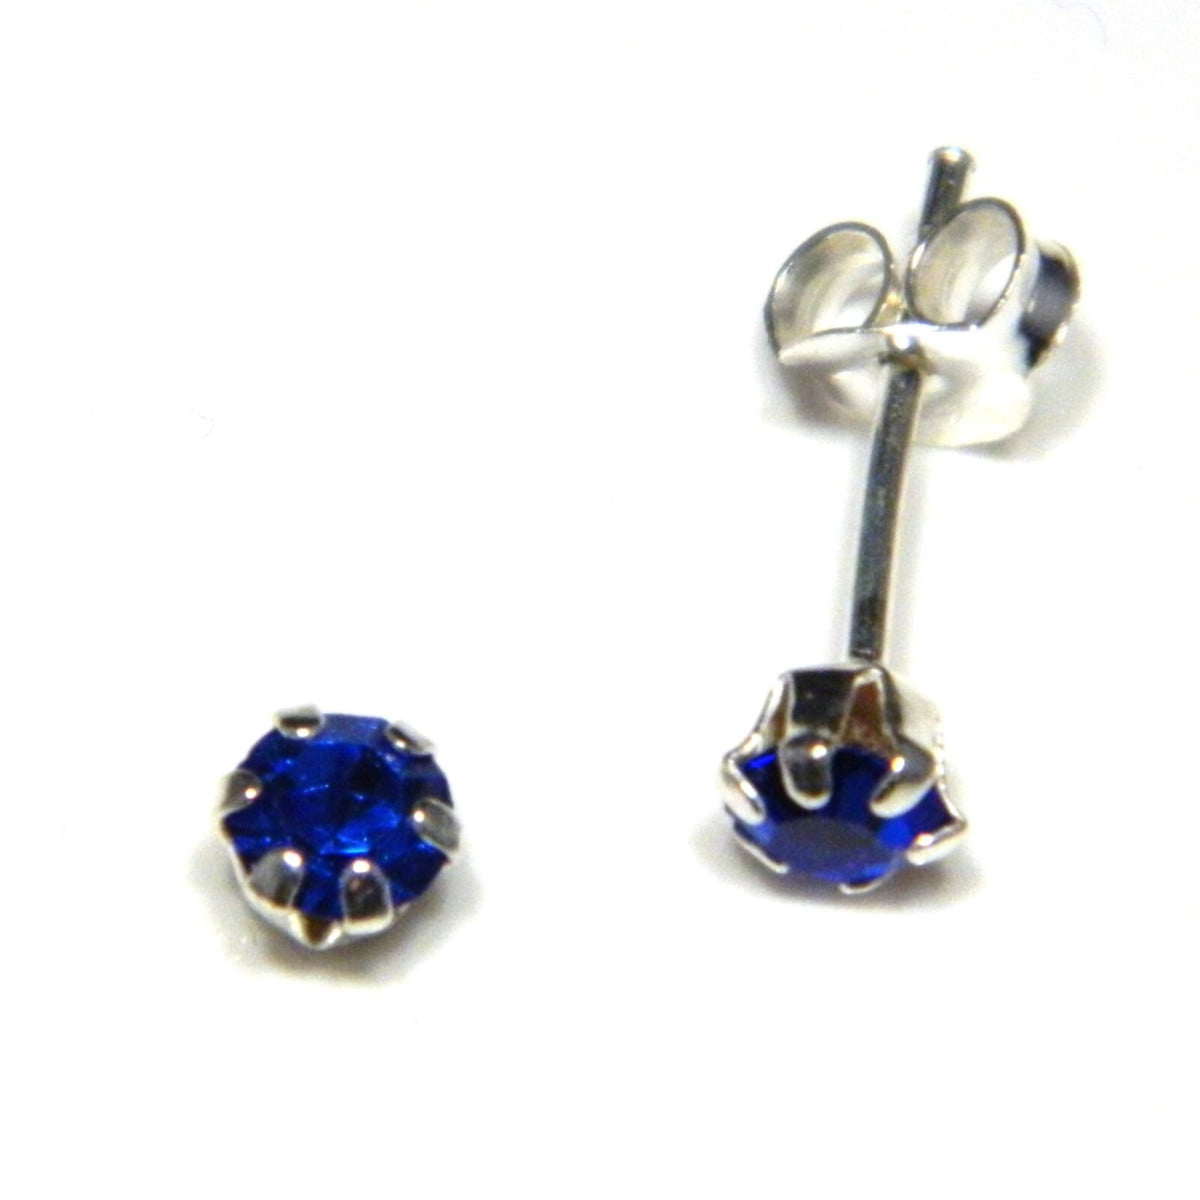 4 mm blue coloured crystal stud round solitaire earrings in sterling silver